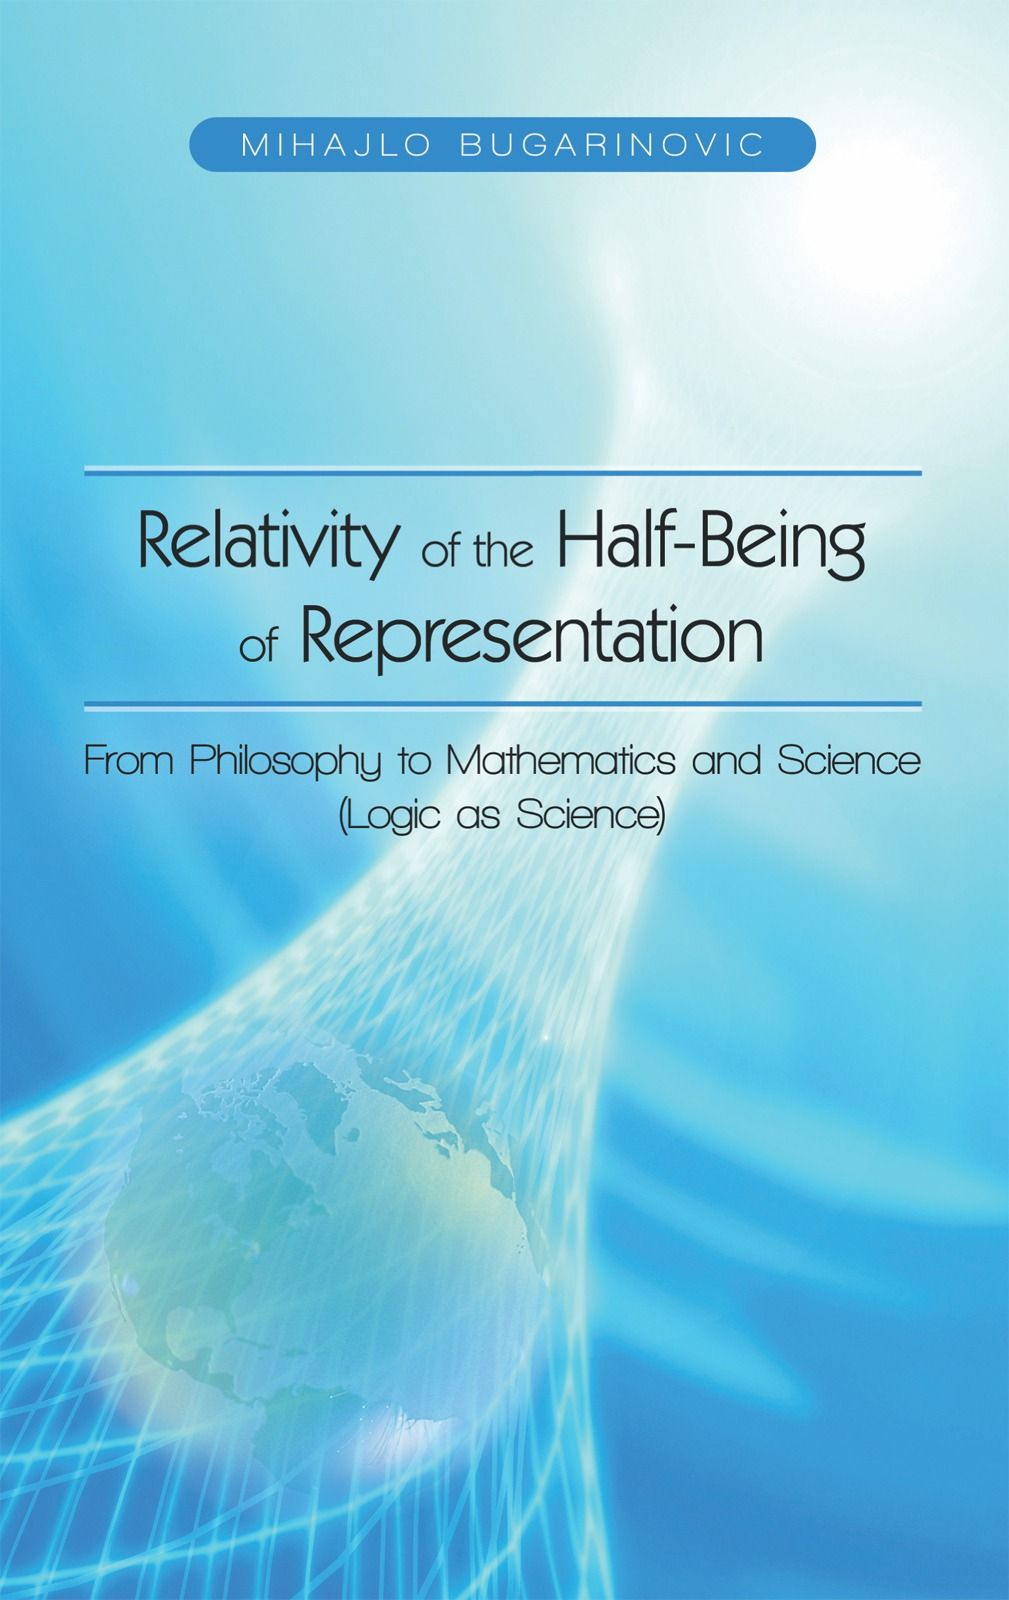 Relativity Of The Half-Being Of Representation - From Philosophy To Mathematics And Science (Logic As Science) By: Mihajlo Bugarinovic